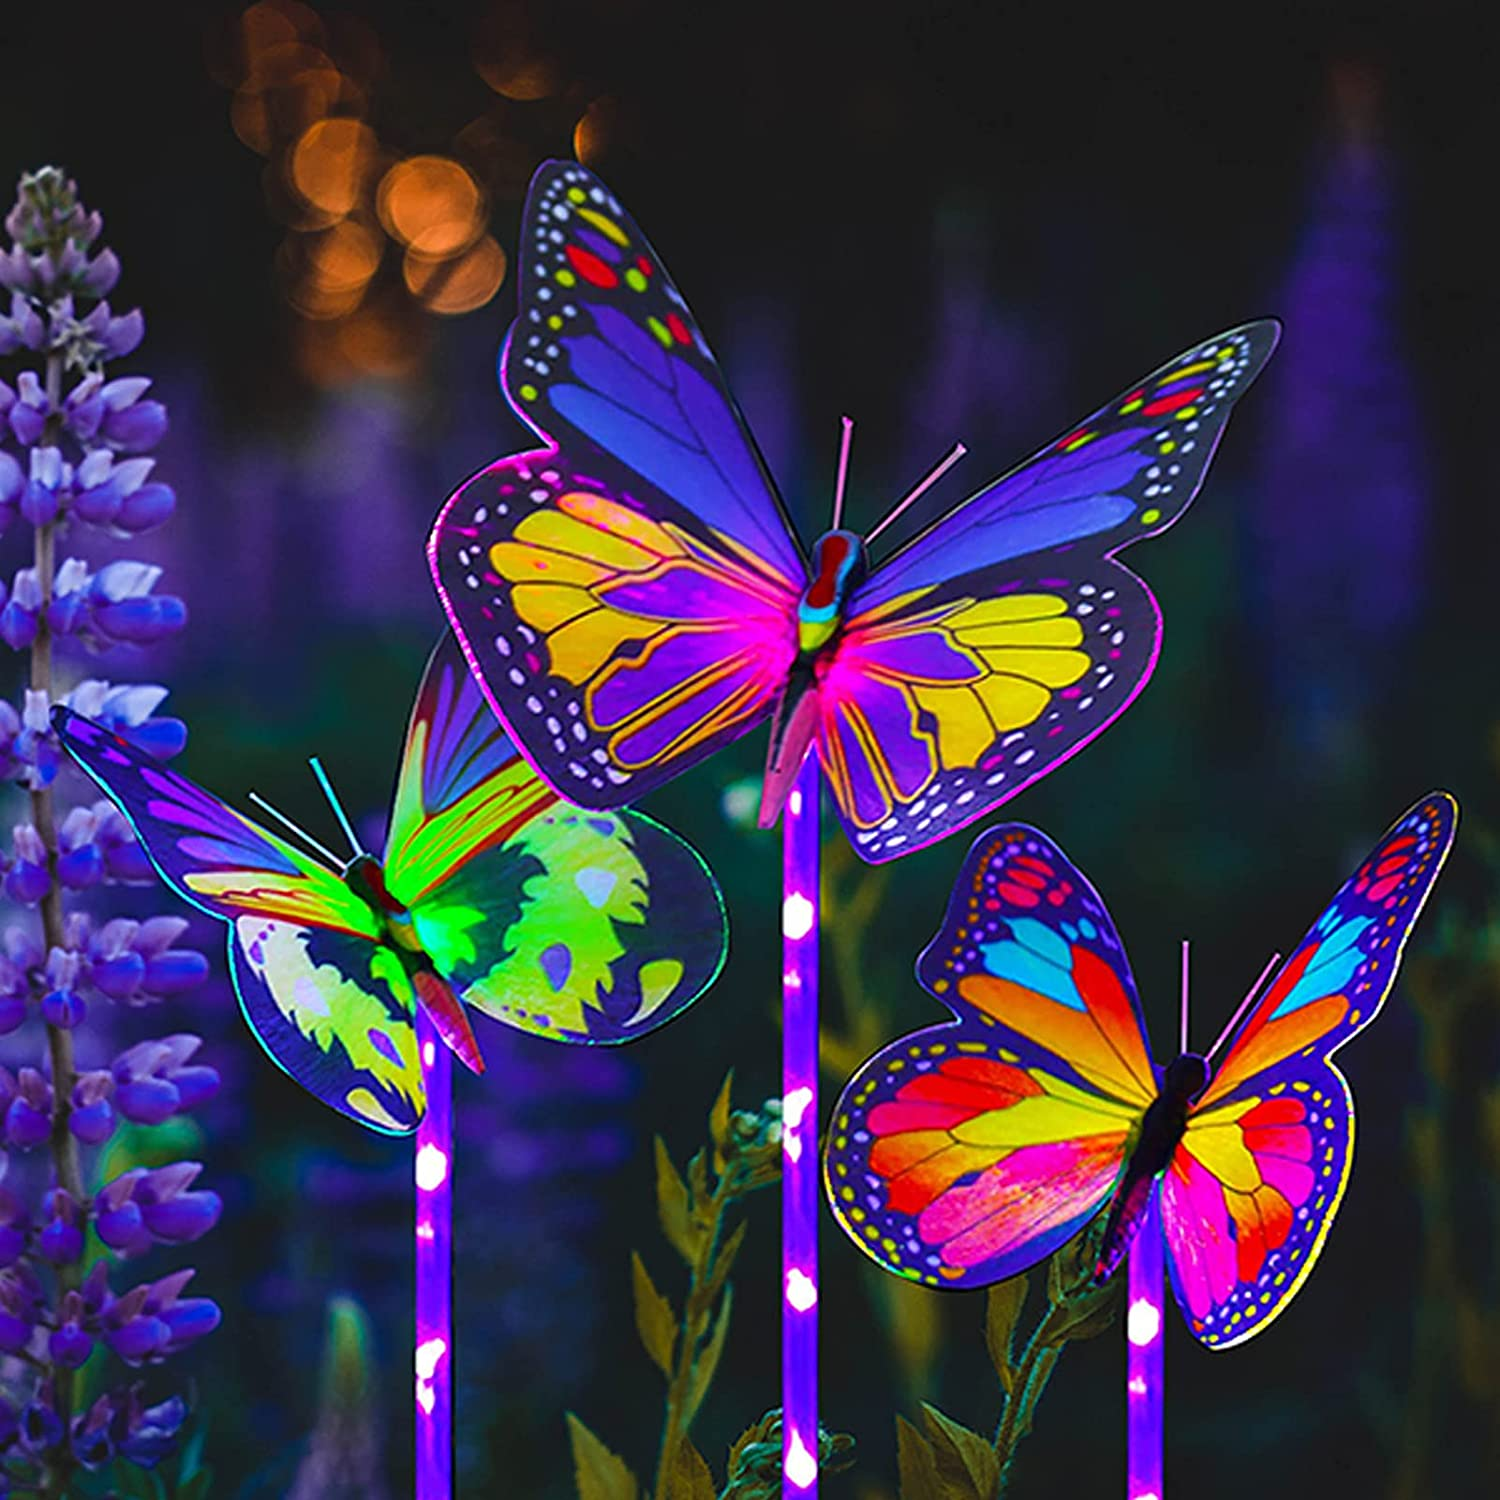 RIZZON Solar Garden Lights Outdoor Decor, 3 Pack Solar Butterfly Stake Lights Multi-Color Changing LED, Waterproof Fiber Optic Butterfly Decorative Lights, for Yard Patio Garden Lawn Decor